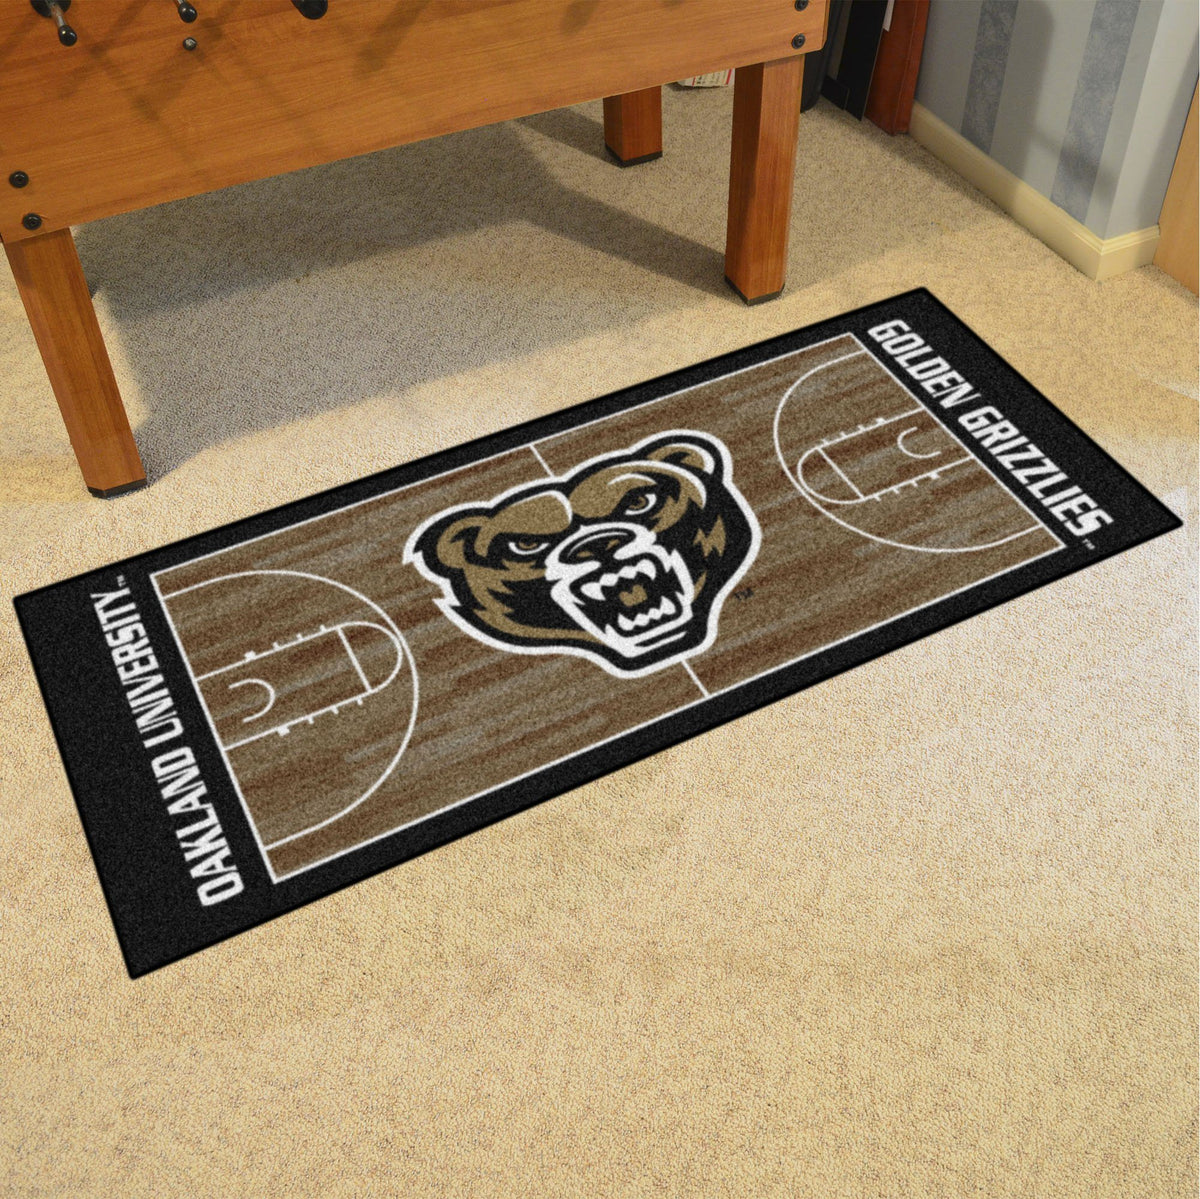 Collegiate - NCAA Basketball Runner Collegiate Mats, Rectangular Mats, NCAA Basketball Runner, Collegiate, Home Fan Mats Oakland